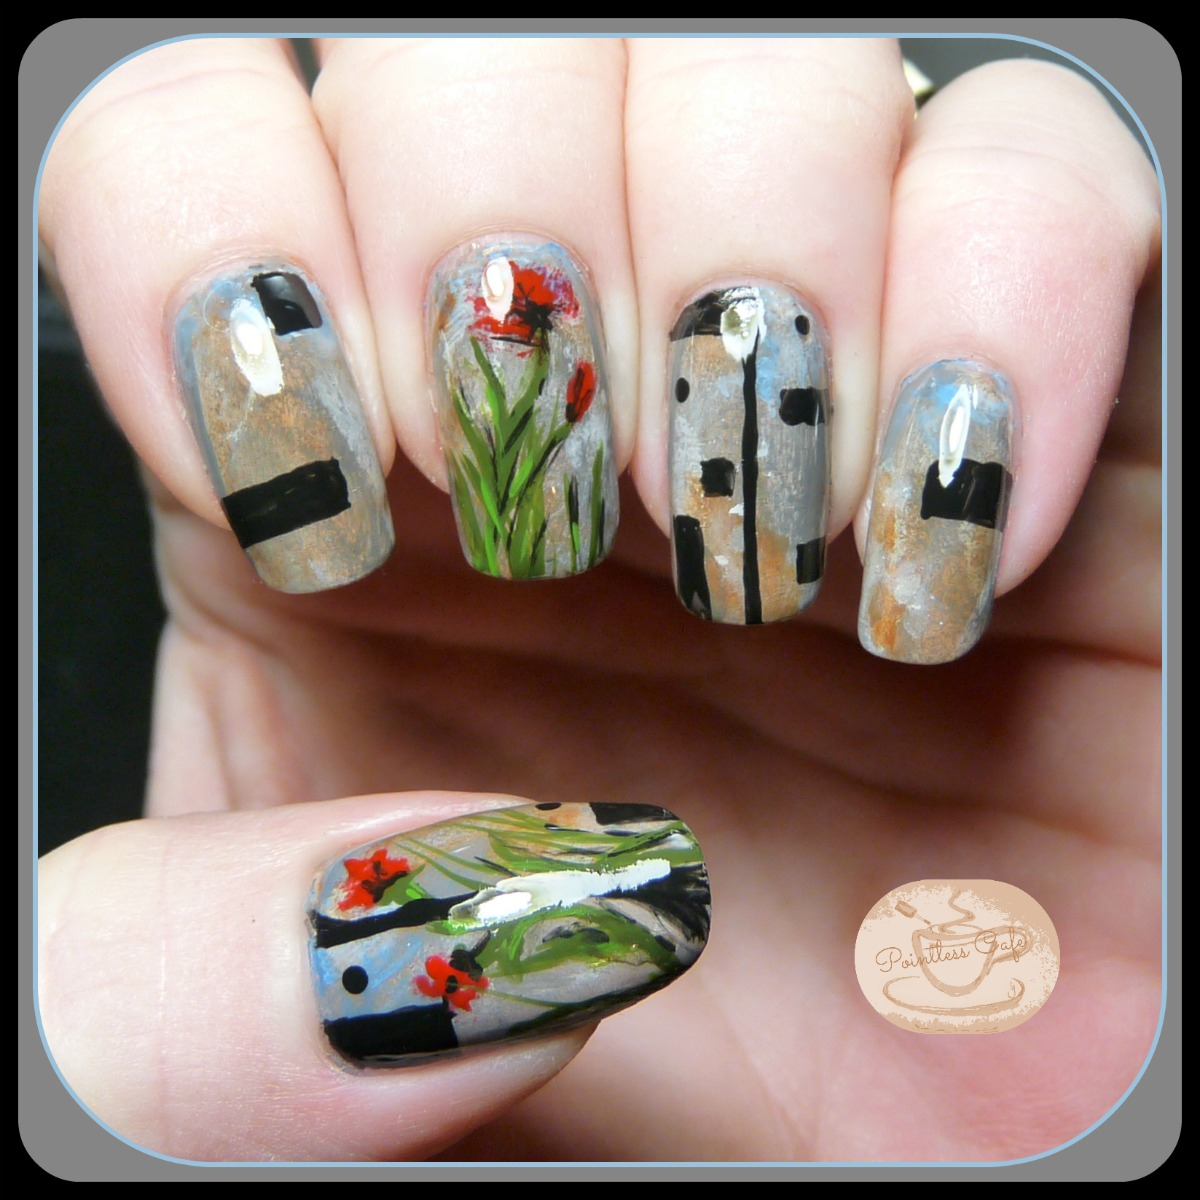 January 2015 pointless cafe 13 days of january nail art challenge prinsesfo Images